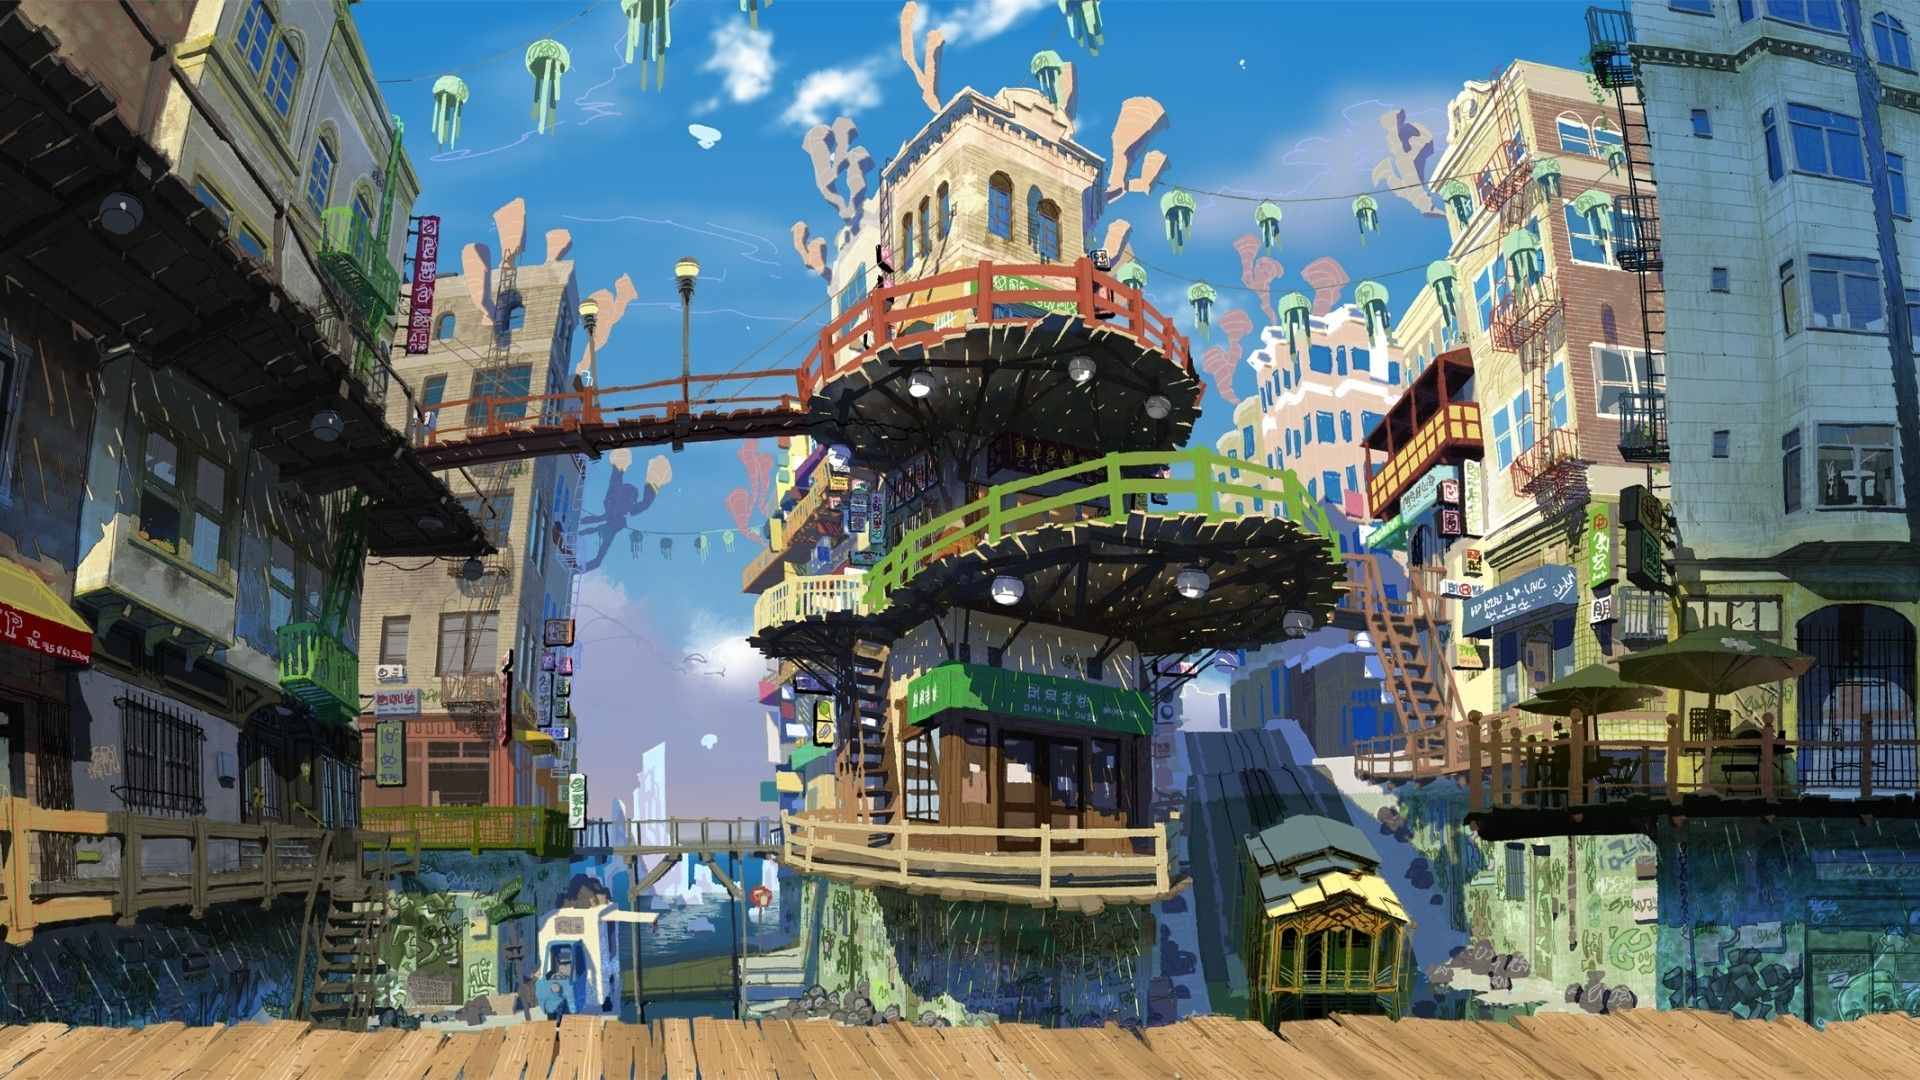 Anime Town Wallpapers   Top Anime Town Backgrounds 1920x1080